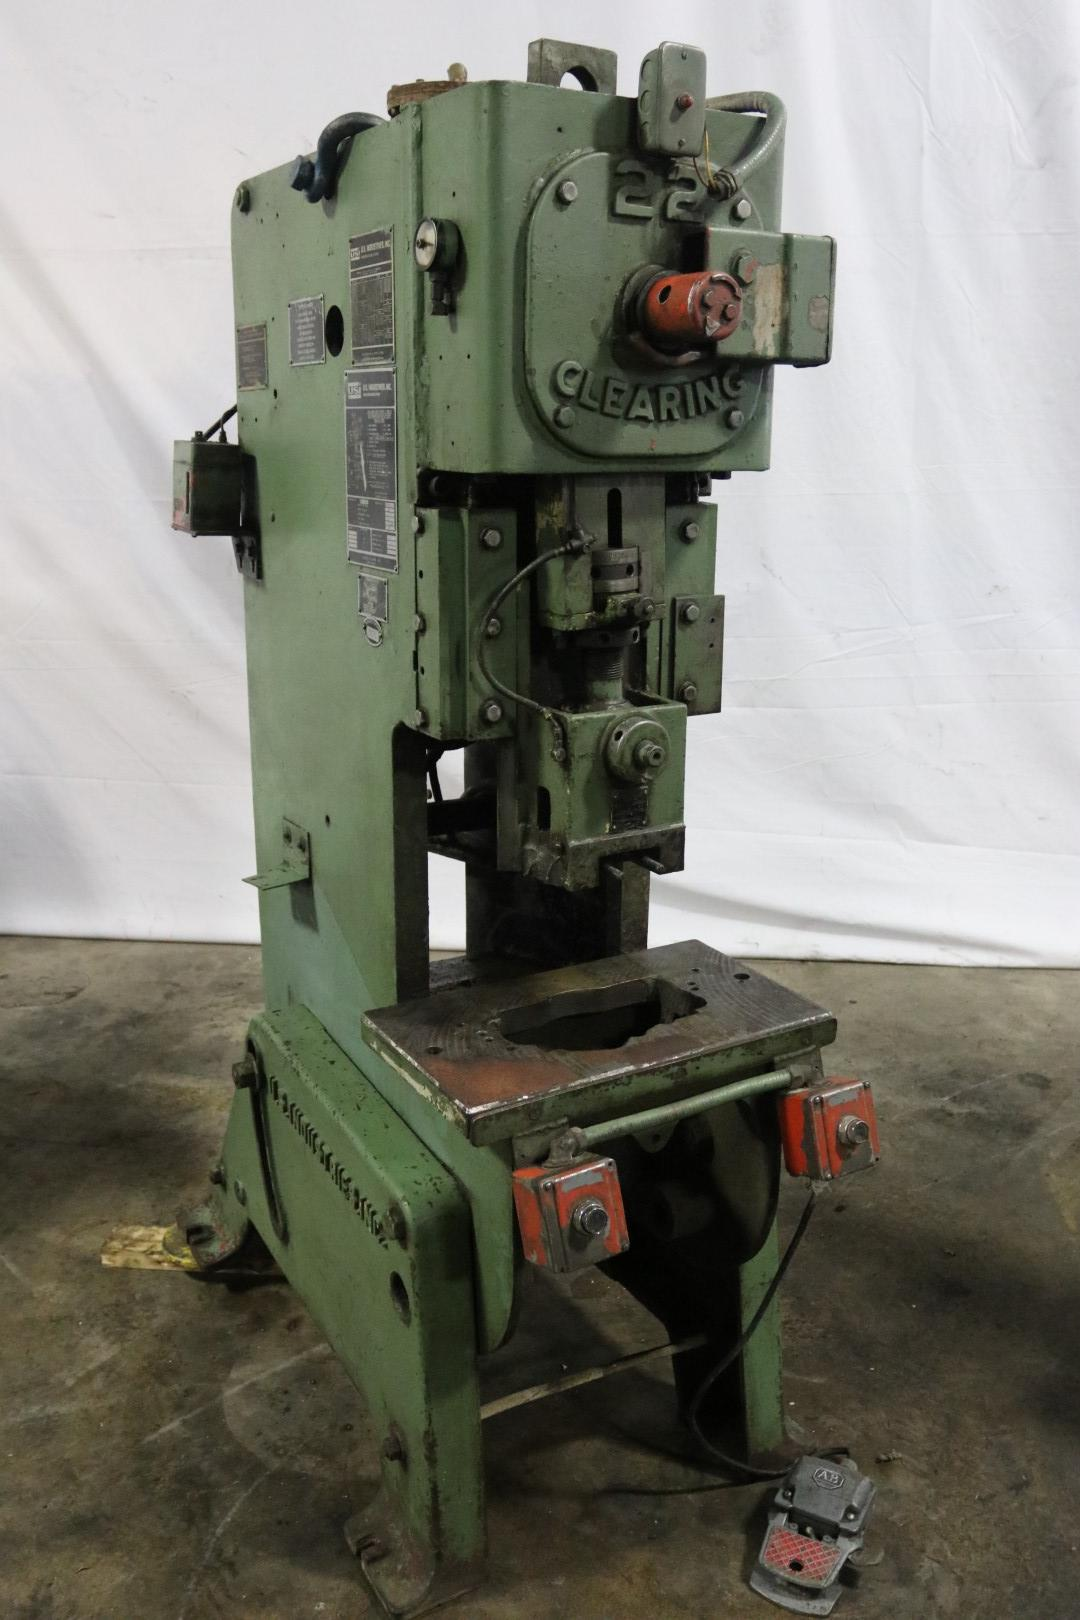 22 TON CLEARING OBI TORC PAC MECHANICAL PRESS: STOCK #10497